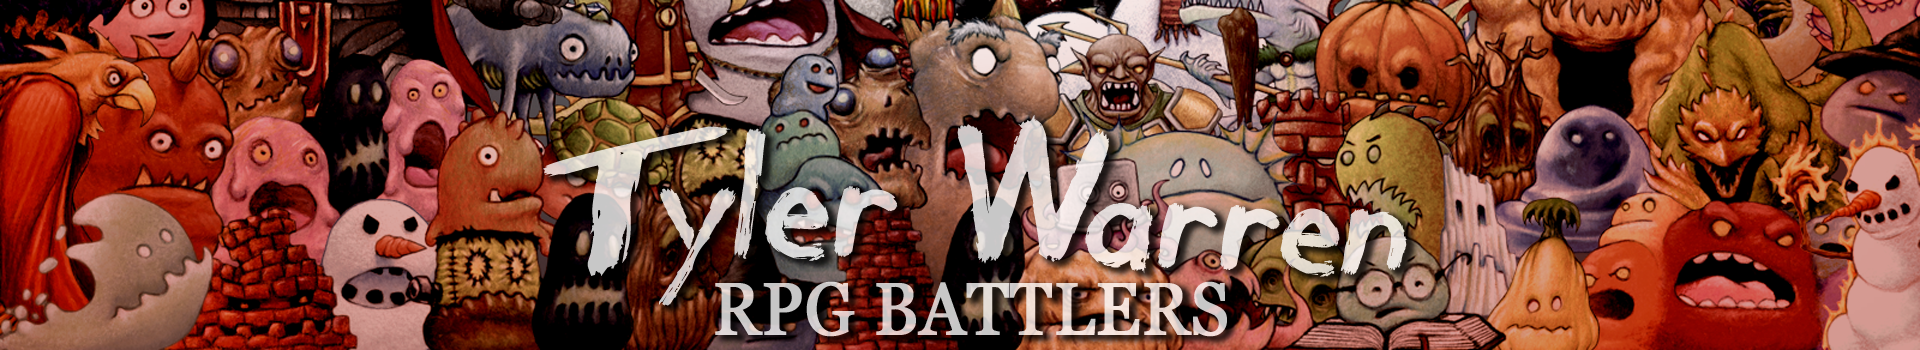 Tyler Warren RPG Battlers - 6th 50 Monsters